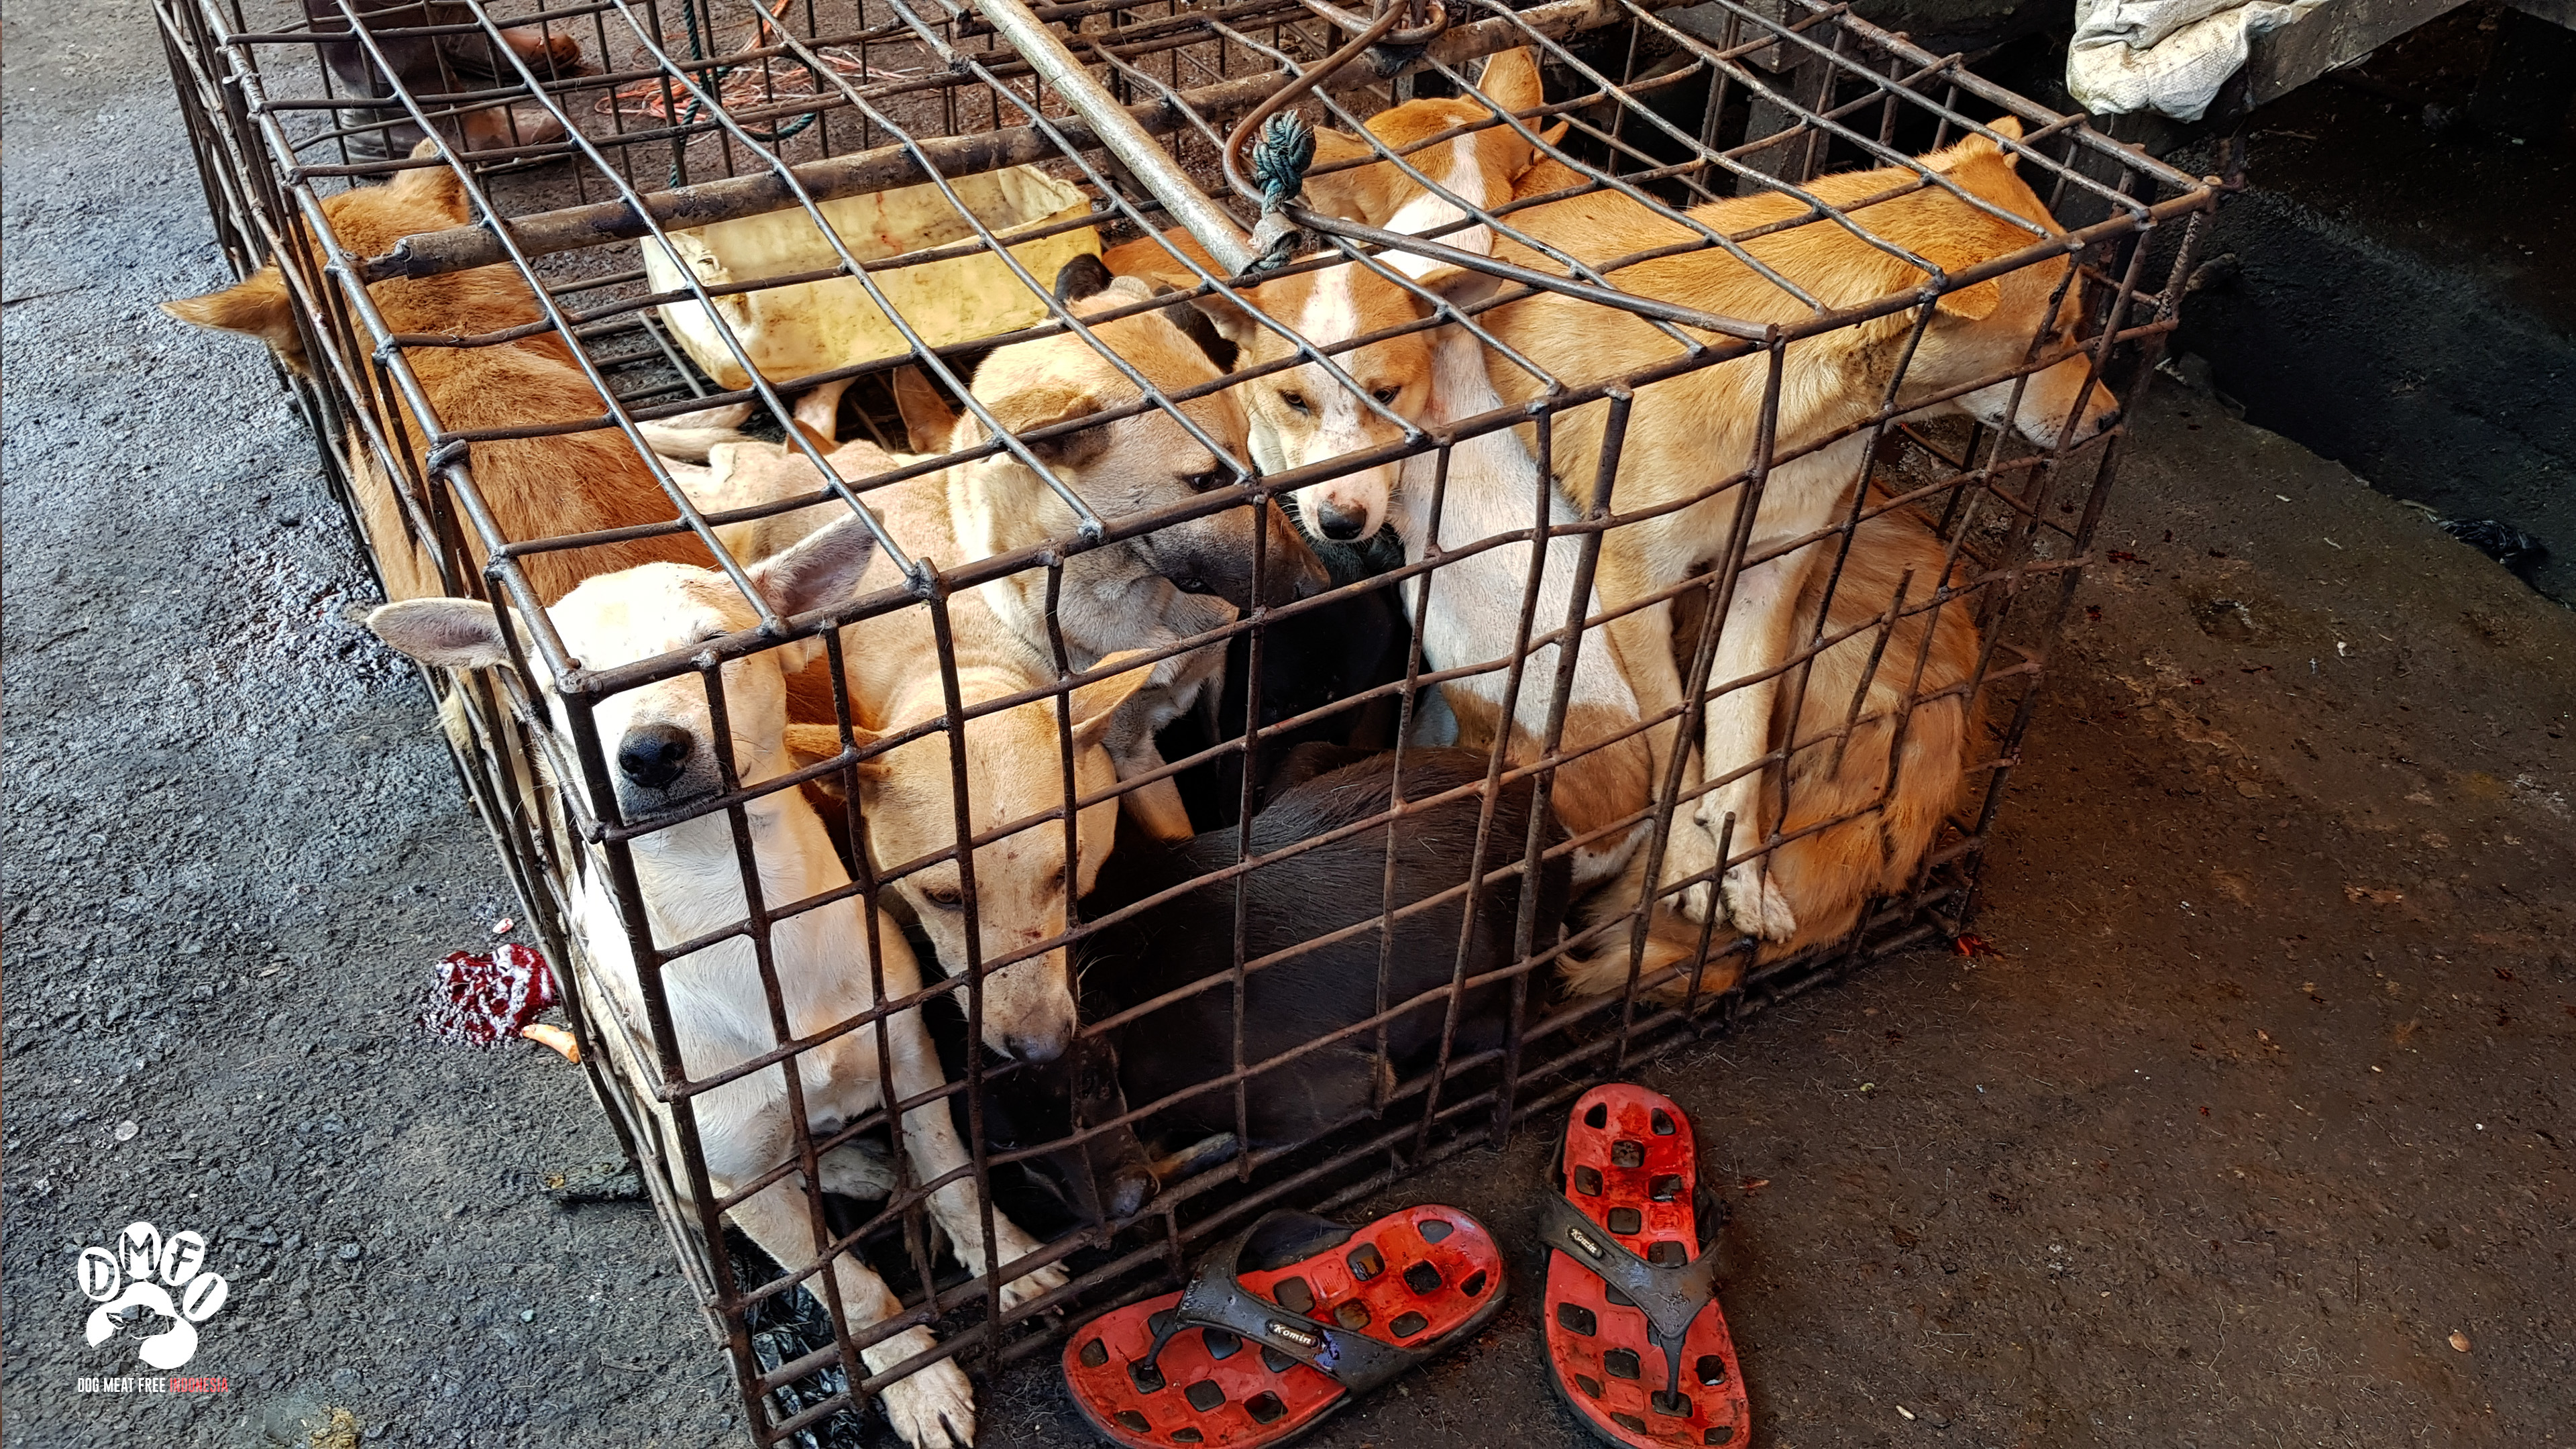 dog meat industry in Indonesia